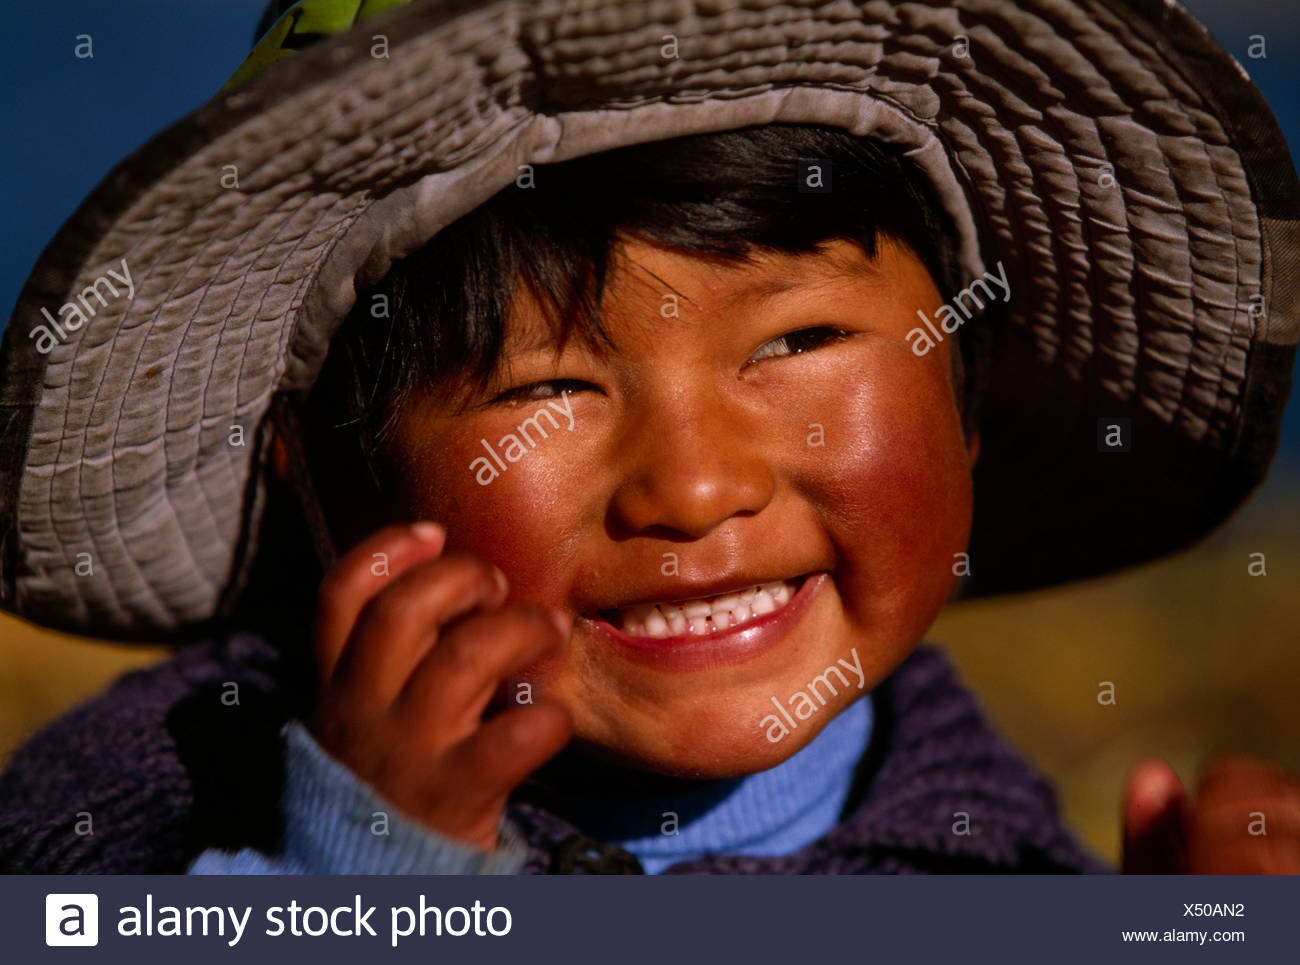 Child of the Uro folk, Titicacsee, Puno, Peru, South America - Stock Image